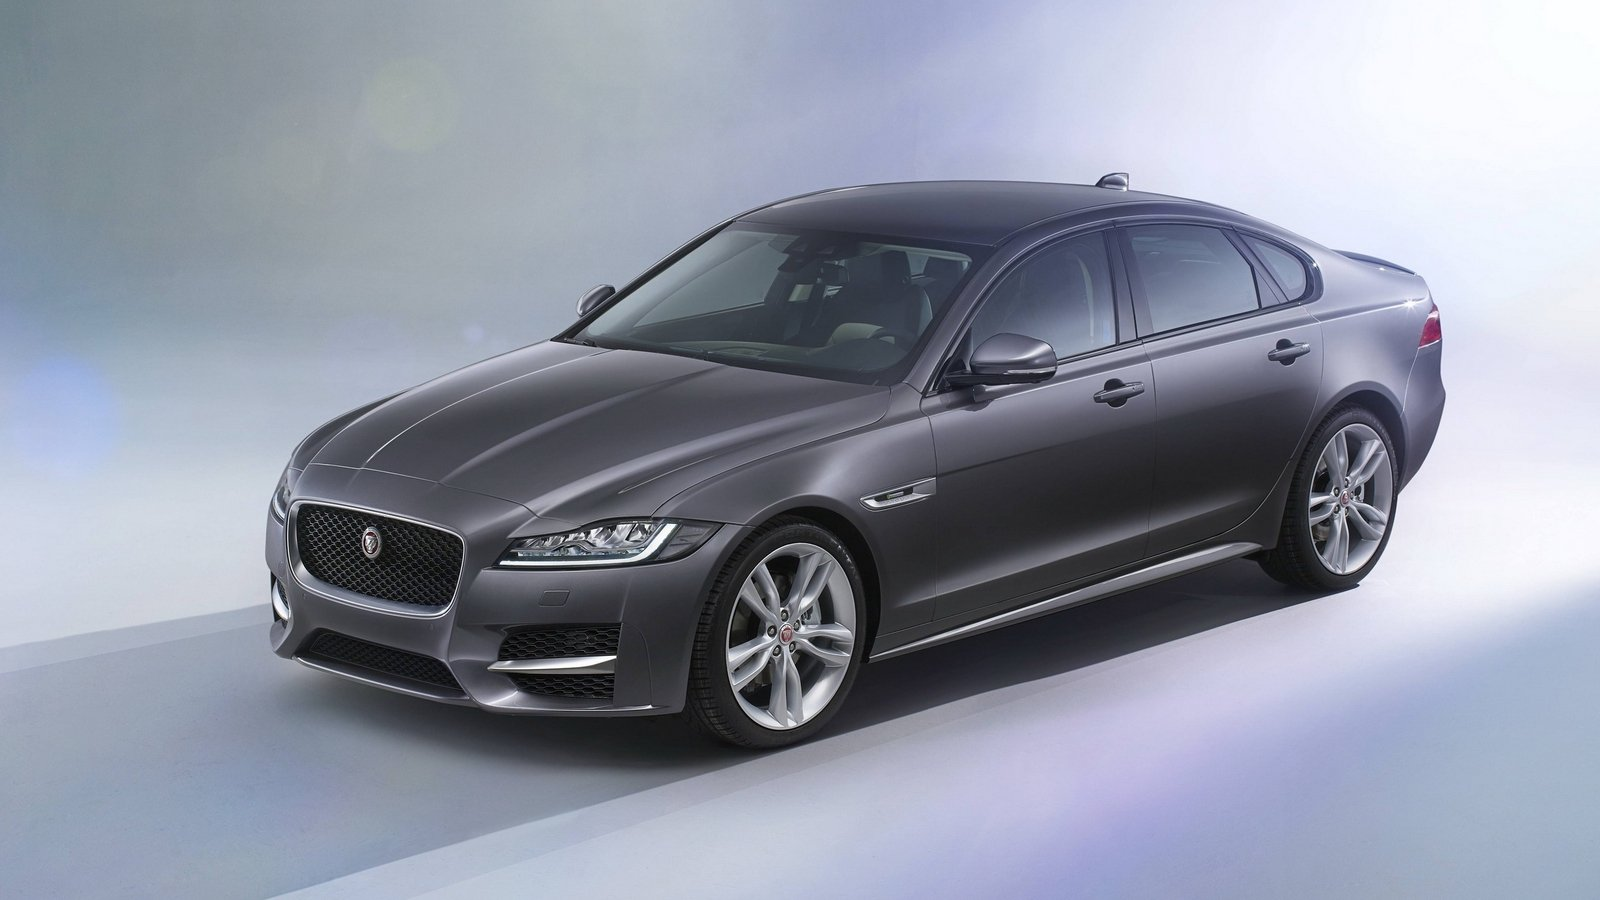 2016 jaguar xf review gallery top speed. Black Bedroom Furniture Sets. Home Design Ideas